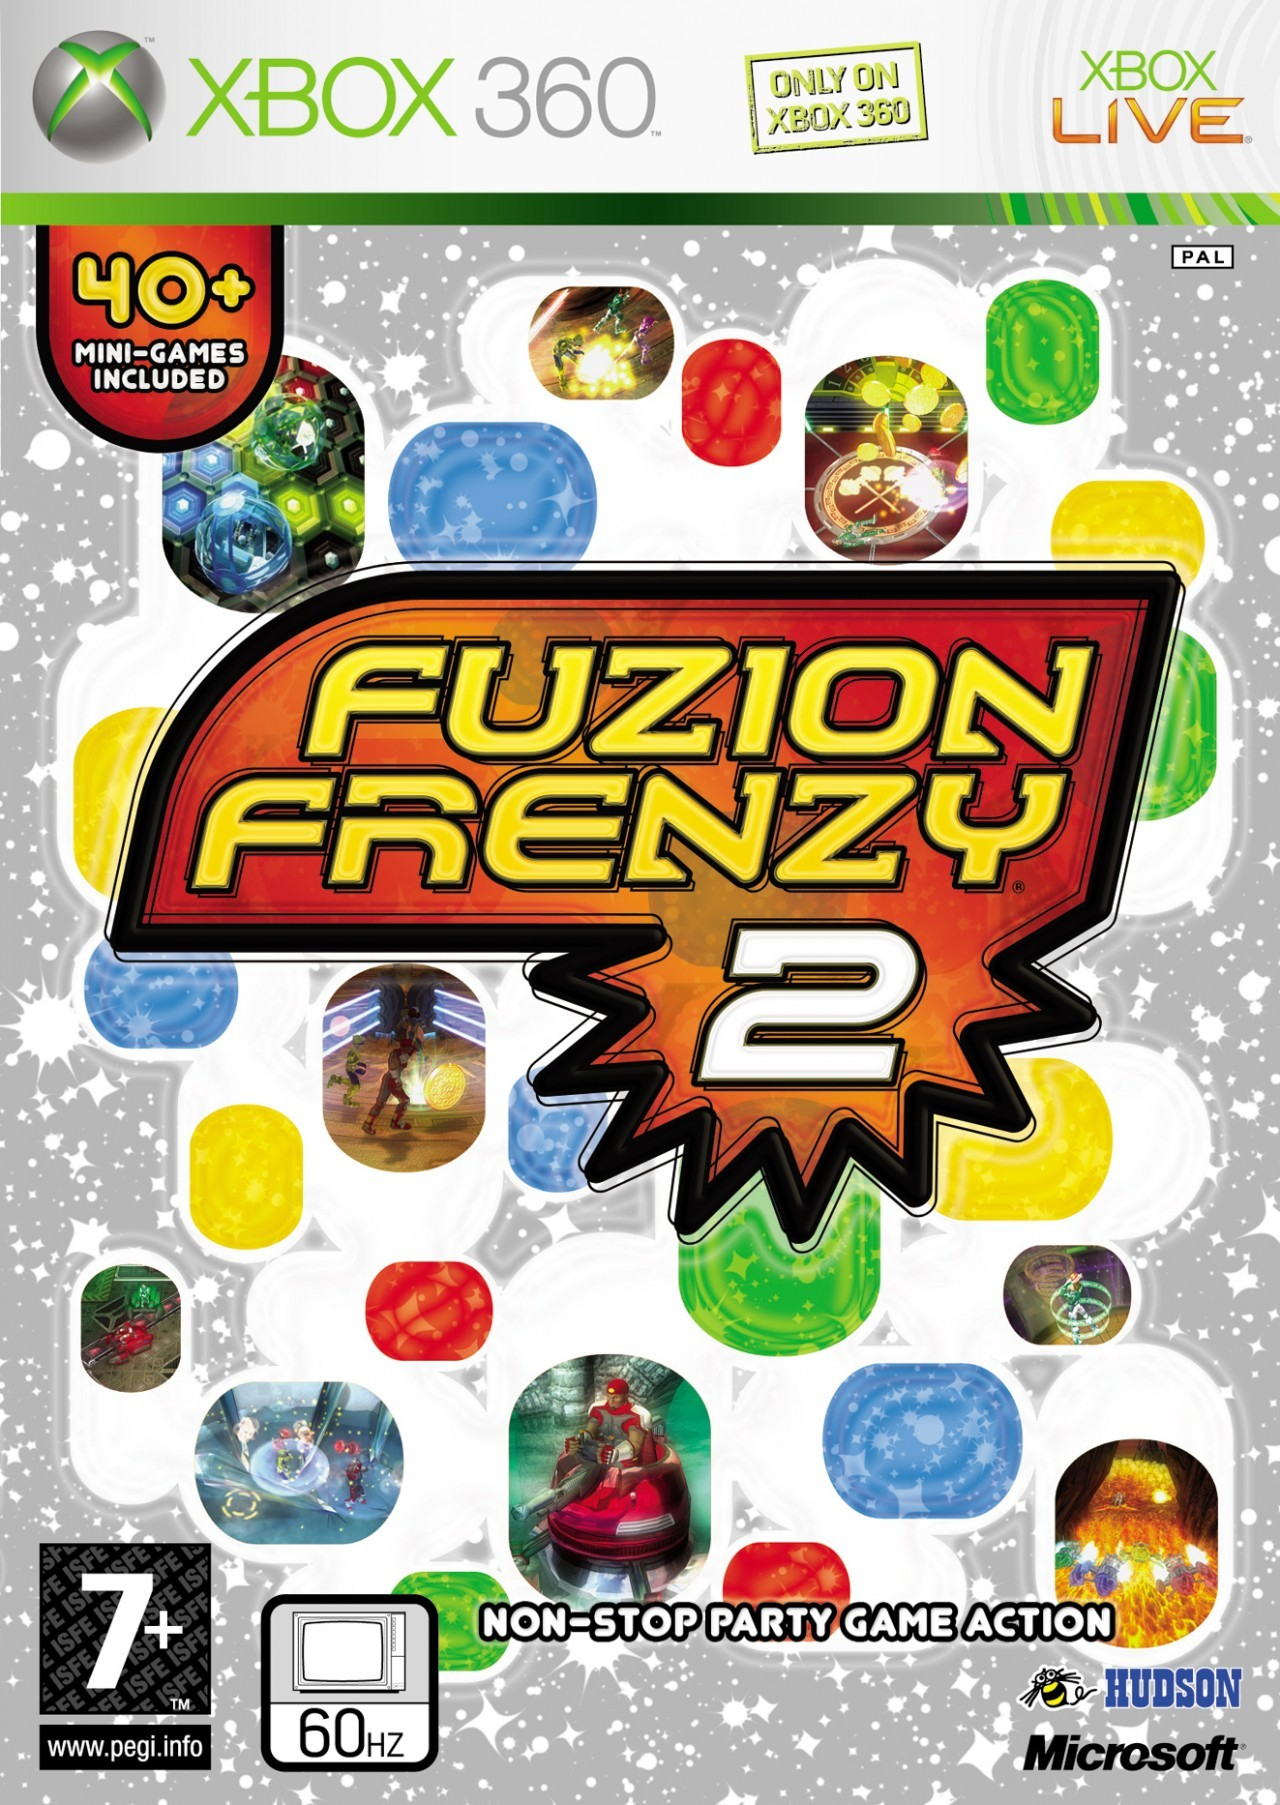 Fuzion Frenzy 2 illustré sur Xbox 360